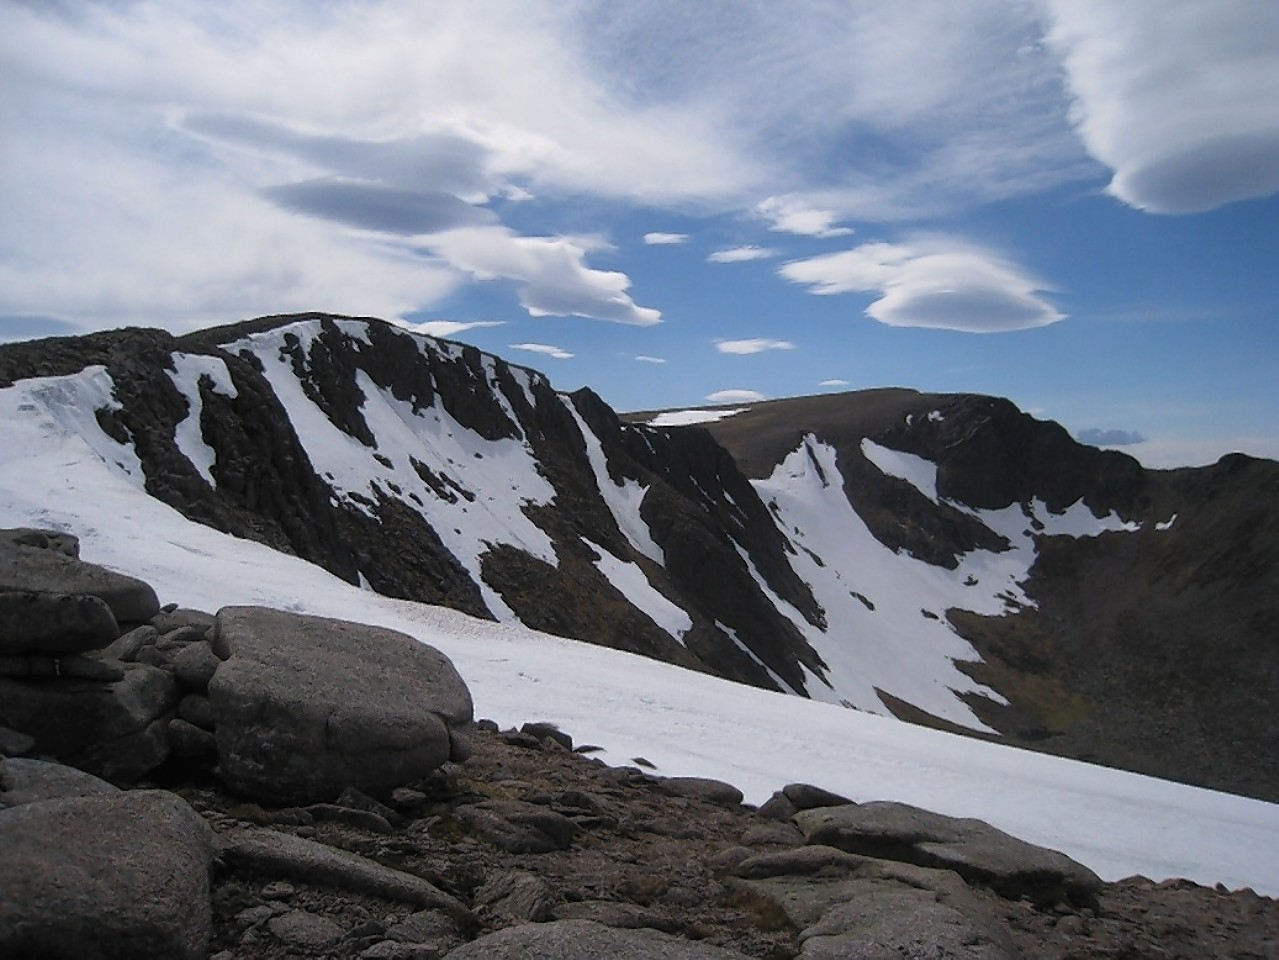 The accident happened in Coire an Sneachda in the Cairngorms. Picture by Neil Reid